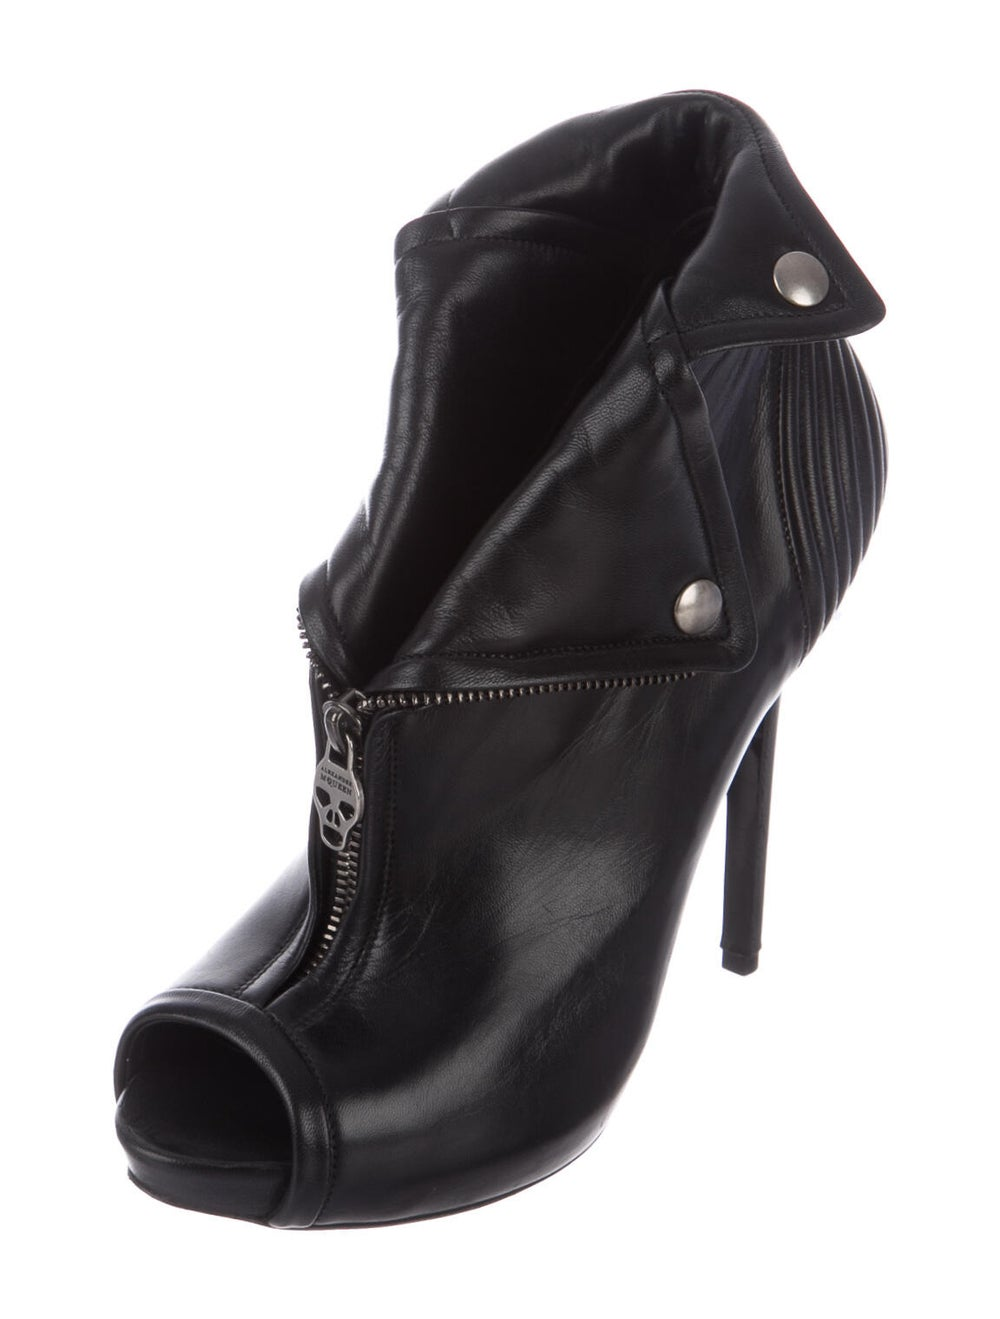 Alexander McQueen Leather Boots Black - image 2